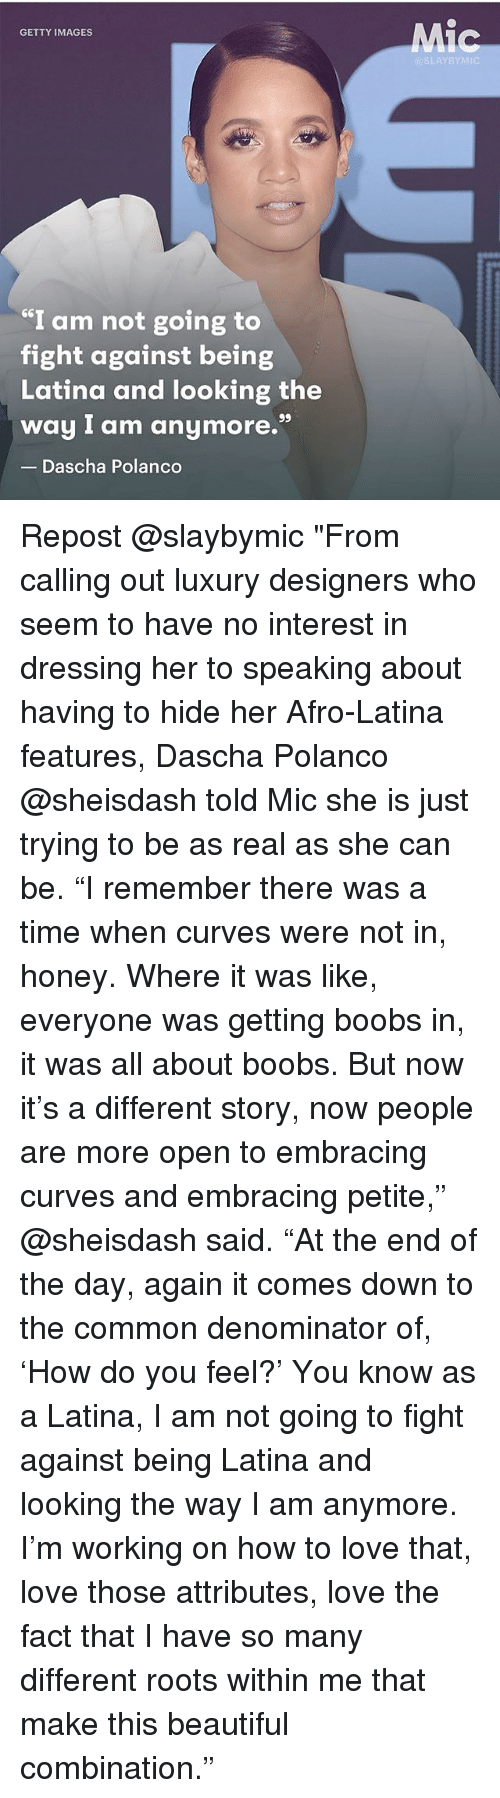 """Commoner: Mic  GETTY IMAGES  @SLAYBYMIC  I am not going to  fight against being  Latina and looking the  way I am anymore.""""  Dascha Polanco Repost @slaybymic """"From calling out luxury designers who seem to have no interest in dressing her to speaking about having to hide her Afro-Latina features, Dascha Polanco @sheisdash told Mic she is just trying to be as real as she can be. """"I remember there was a time when curves were not in, honey. Where it was like, everyone was getting boobs in, it was all about boobs. But now it's a different story, now people are more open to embracing curves and embracing petite,"""" @sheisdash said. """"At the end of the day, again it comes down to the common denominator of, 'How do you feel?' You know as a Latina, I am not going to fight against being Latina and looking the way I am anymore. I'm working on how to love that, love those attributes, love the fact that I have so many different roots within me that make this beautiful combination."""""""